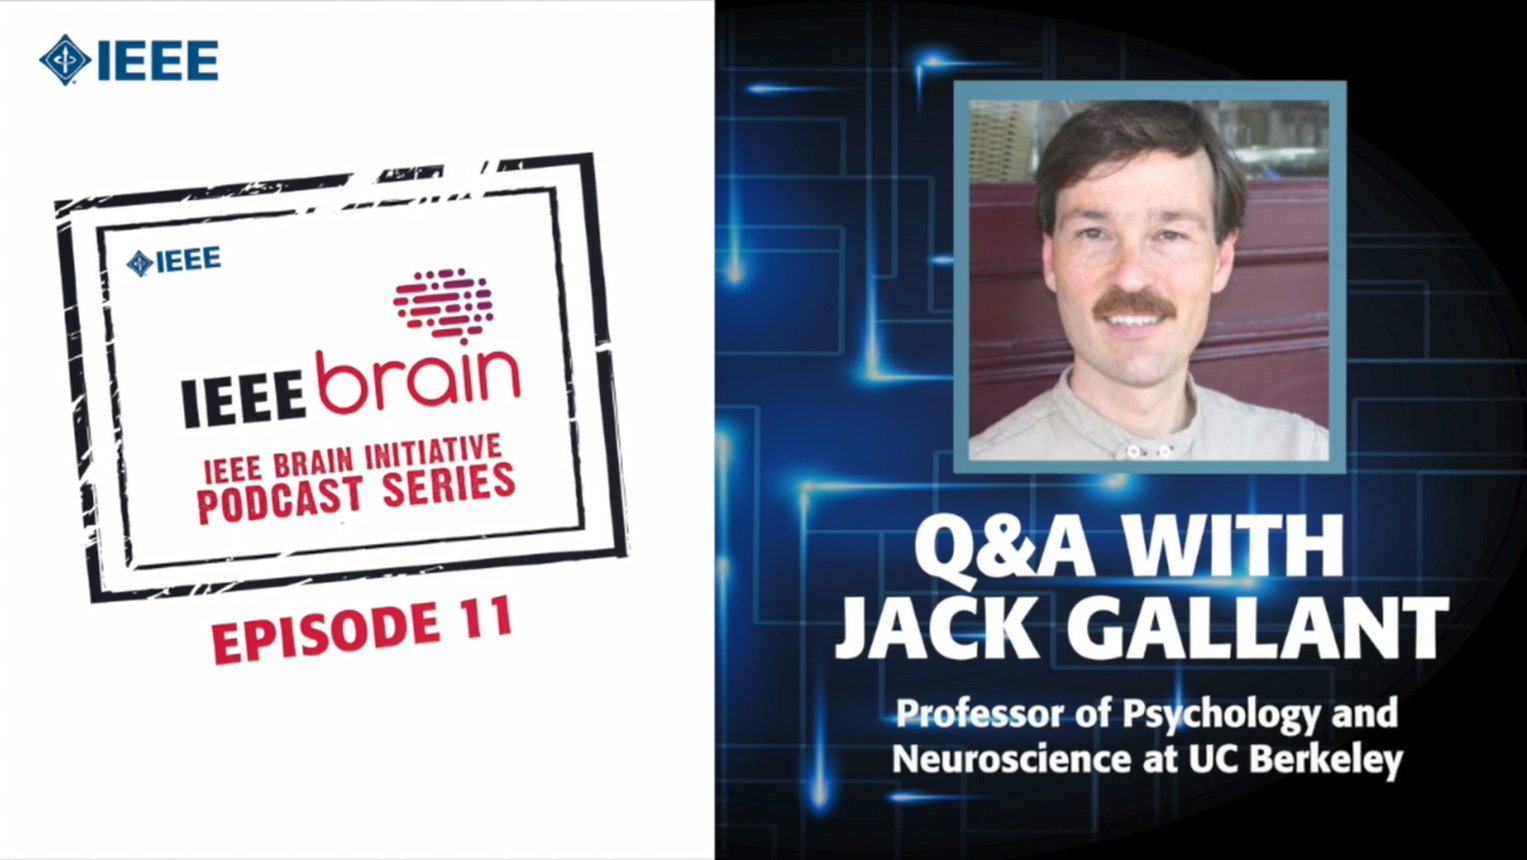 Q&A with Jack Gallant: IEEE Brain Podcast, Episode 11